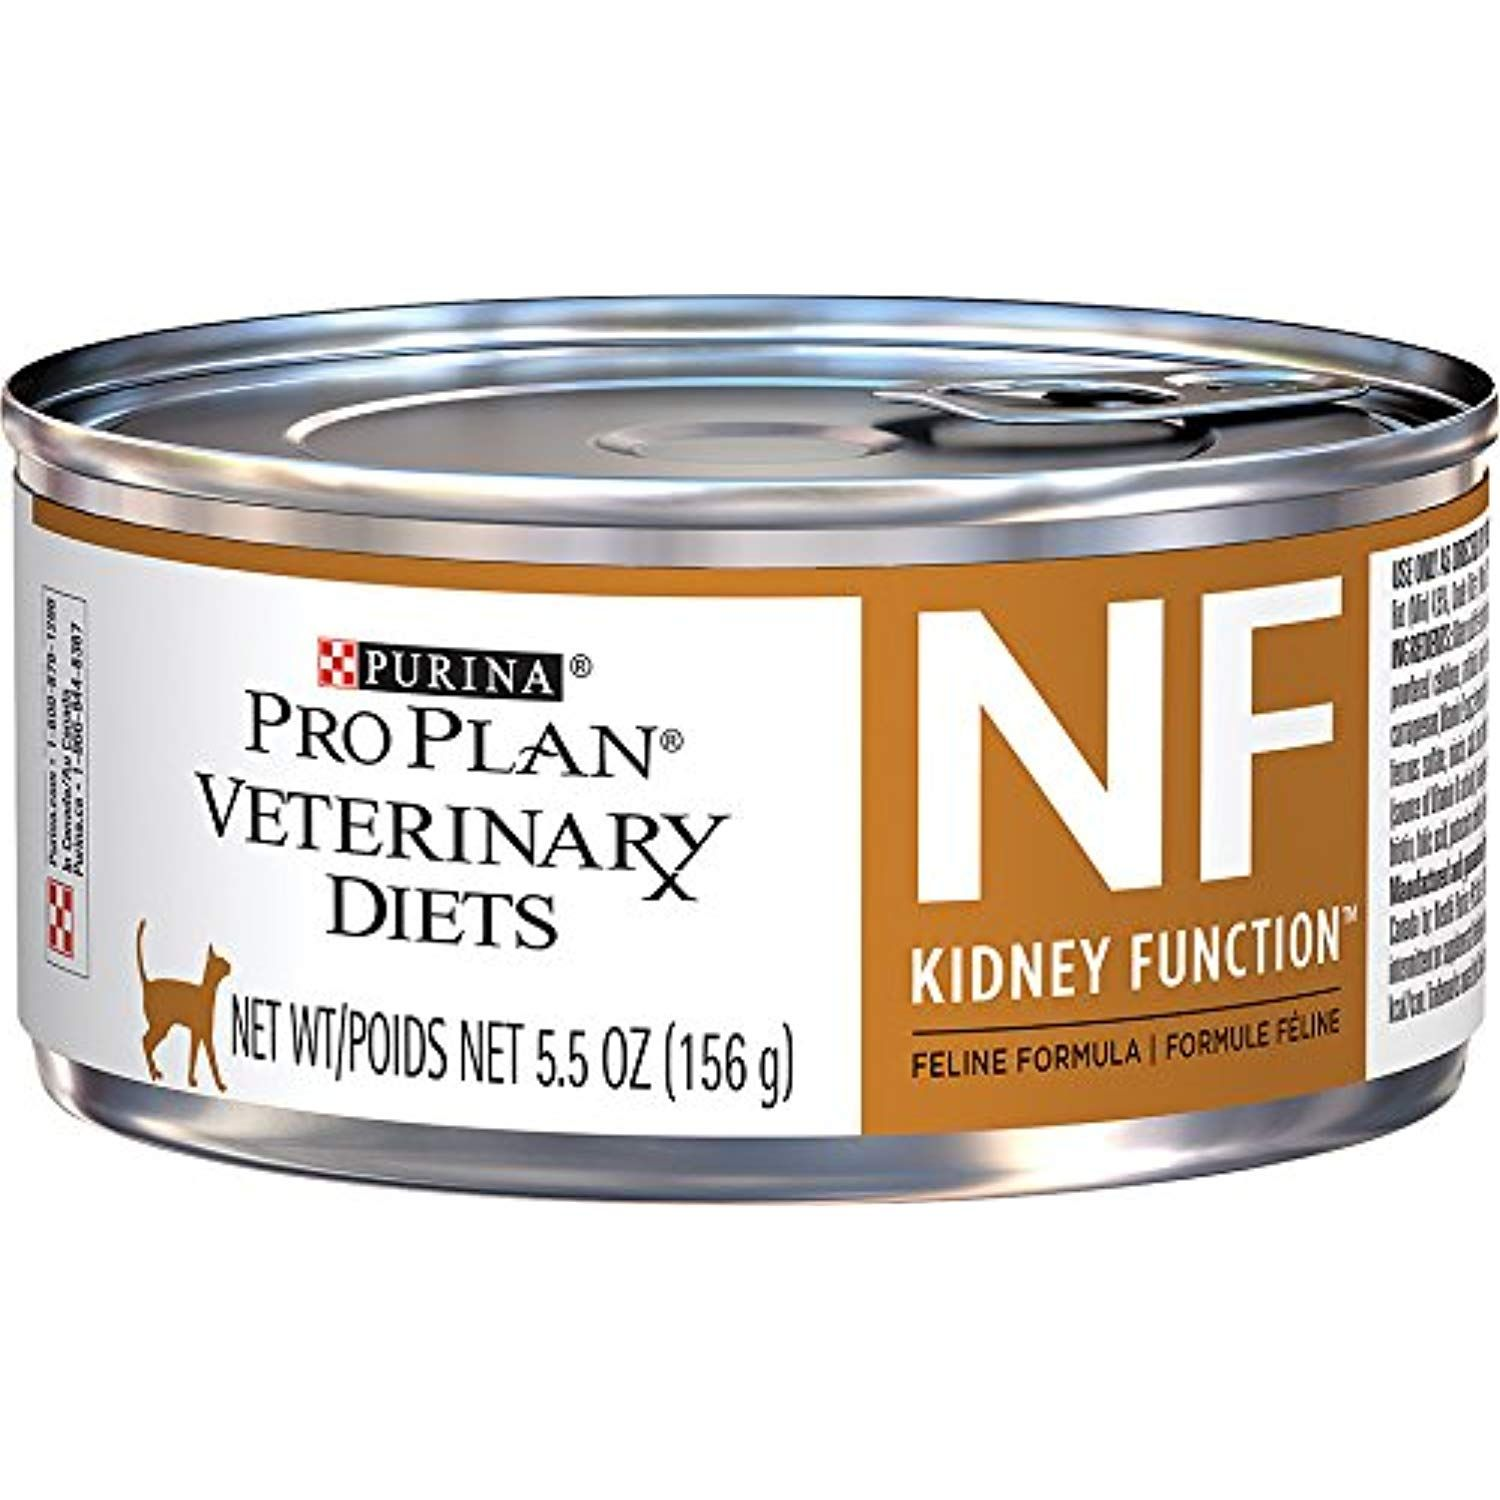 Purina nf kidney function cat food 24 55oz cans see